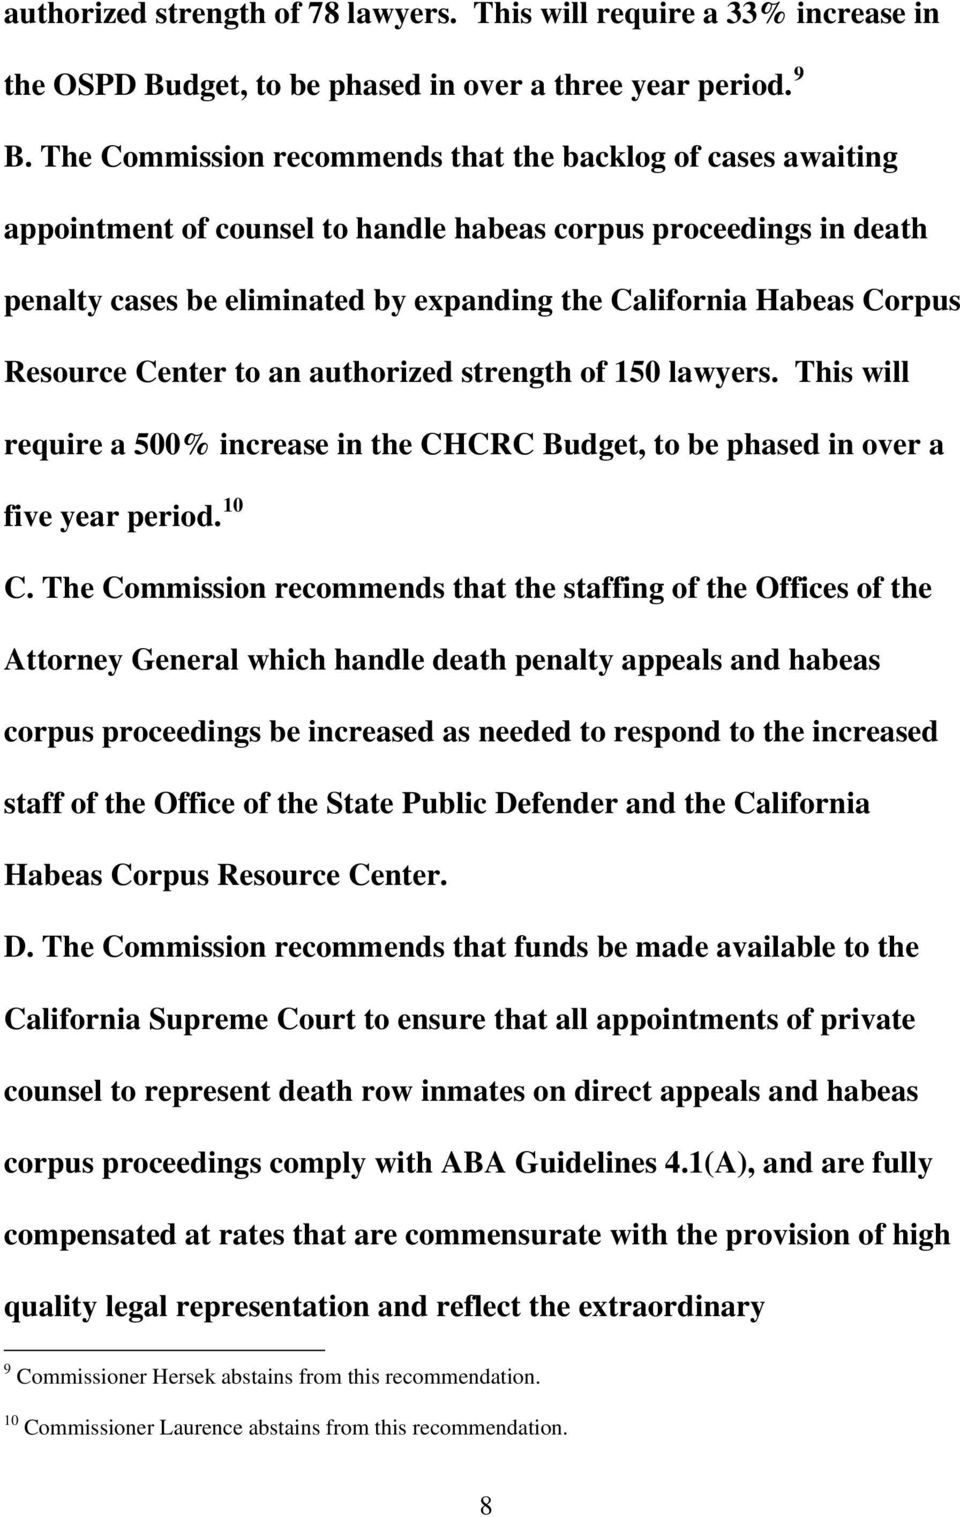 Resource Center to an authorized strength of 150 lawyers. This will require a 500% increase in the CHCRC Budget, to be phased in over a five year period. 10 C.